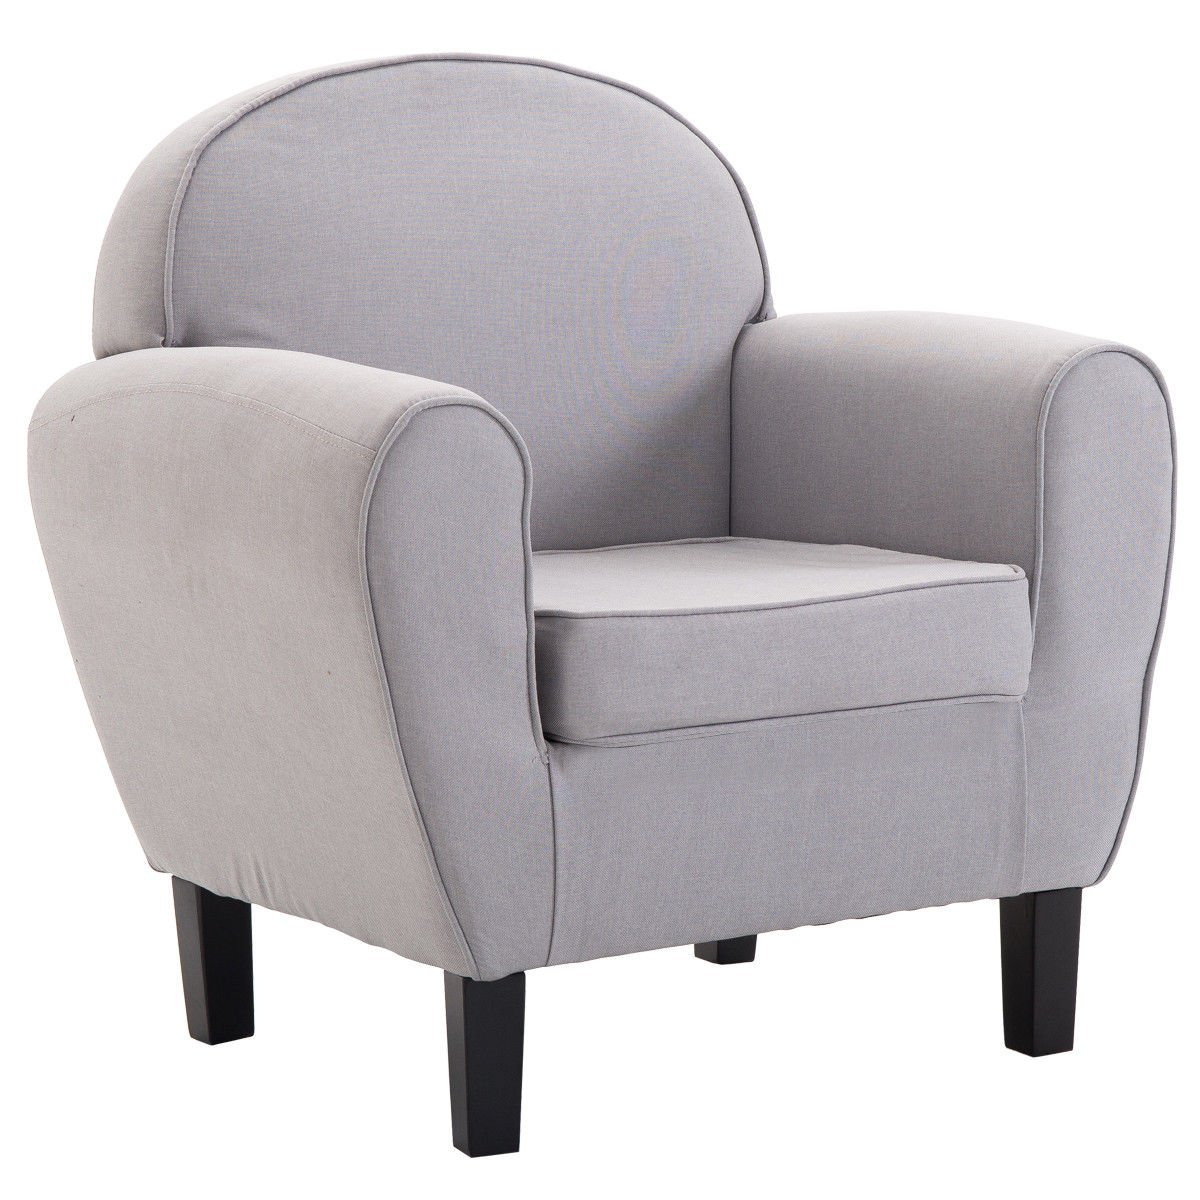 Giantex Arm Chair Single Sofa Modern Leisure Accent Chair Linen Upholstered Club Living Room Furniture Barrel Chair w/Removable Cushion Solid Wood Frame (Light Gray)